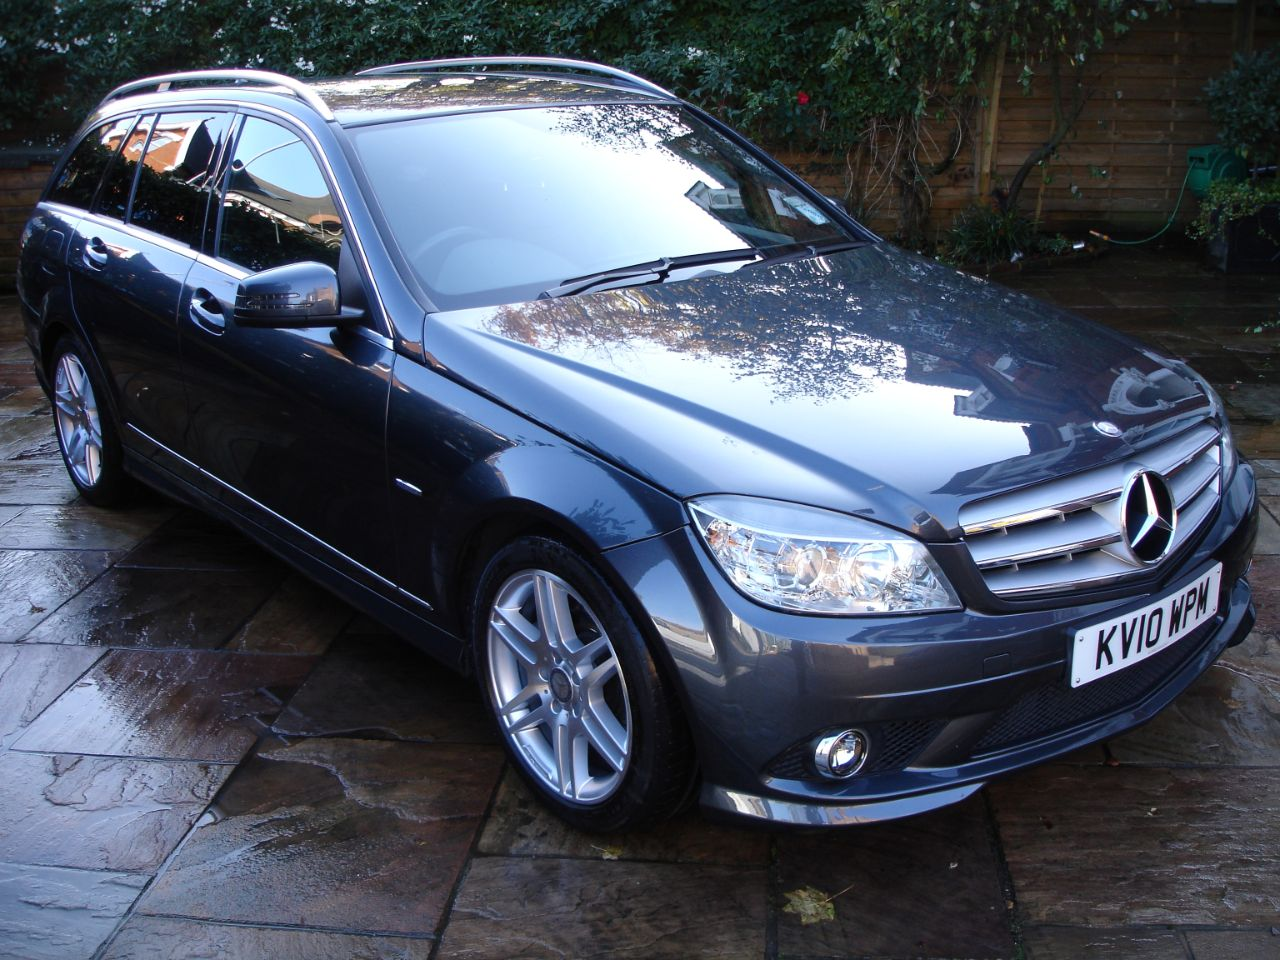 http://www.autoweb.co.uk/media/images/9110859/mercedes-benz-c-class-diesel-estate.jpg